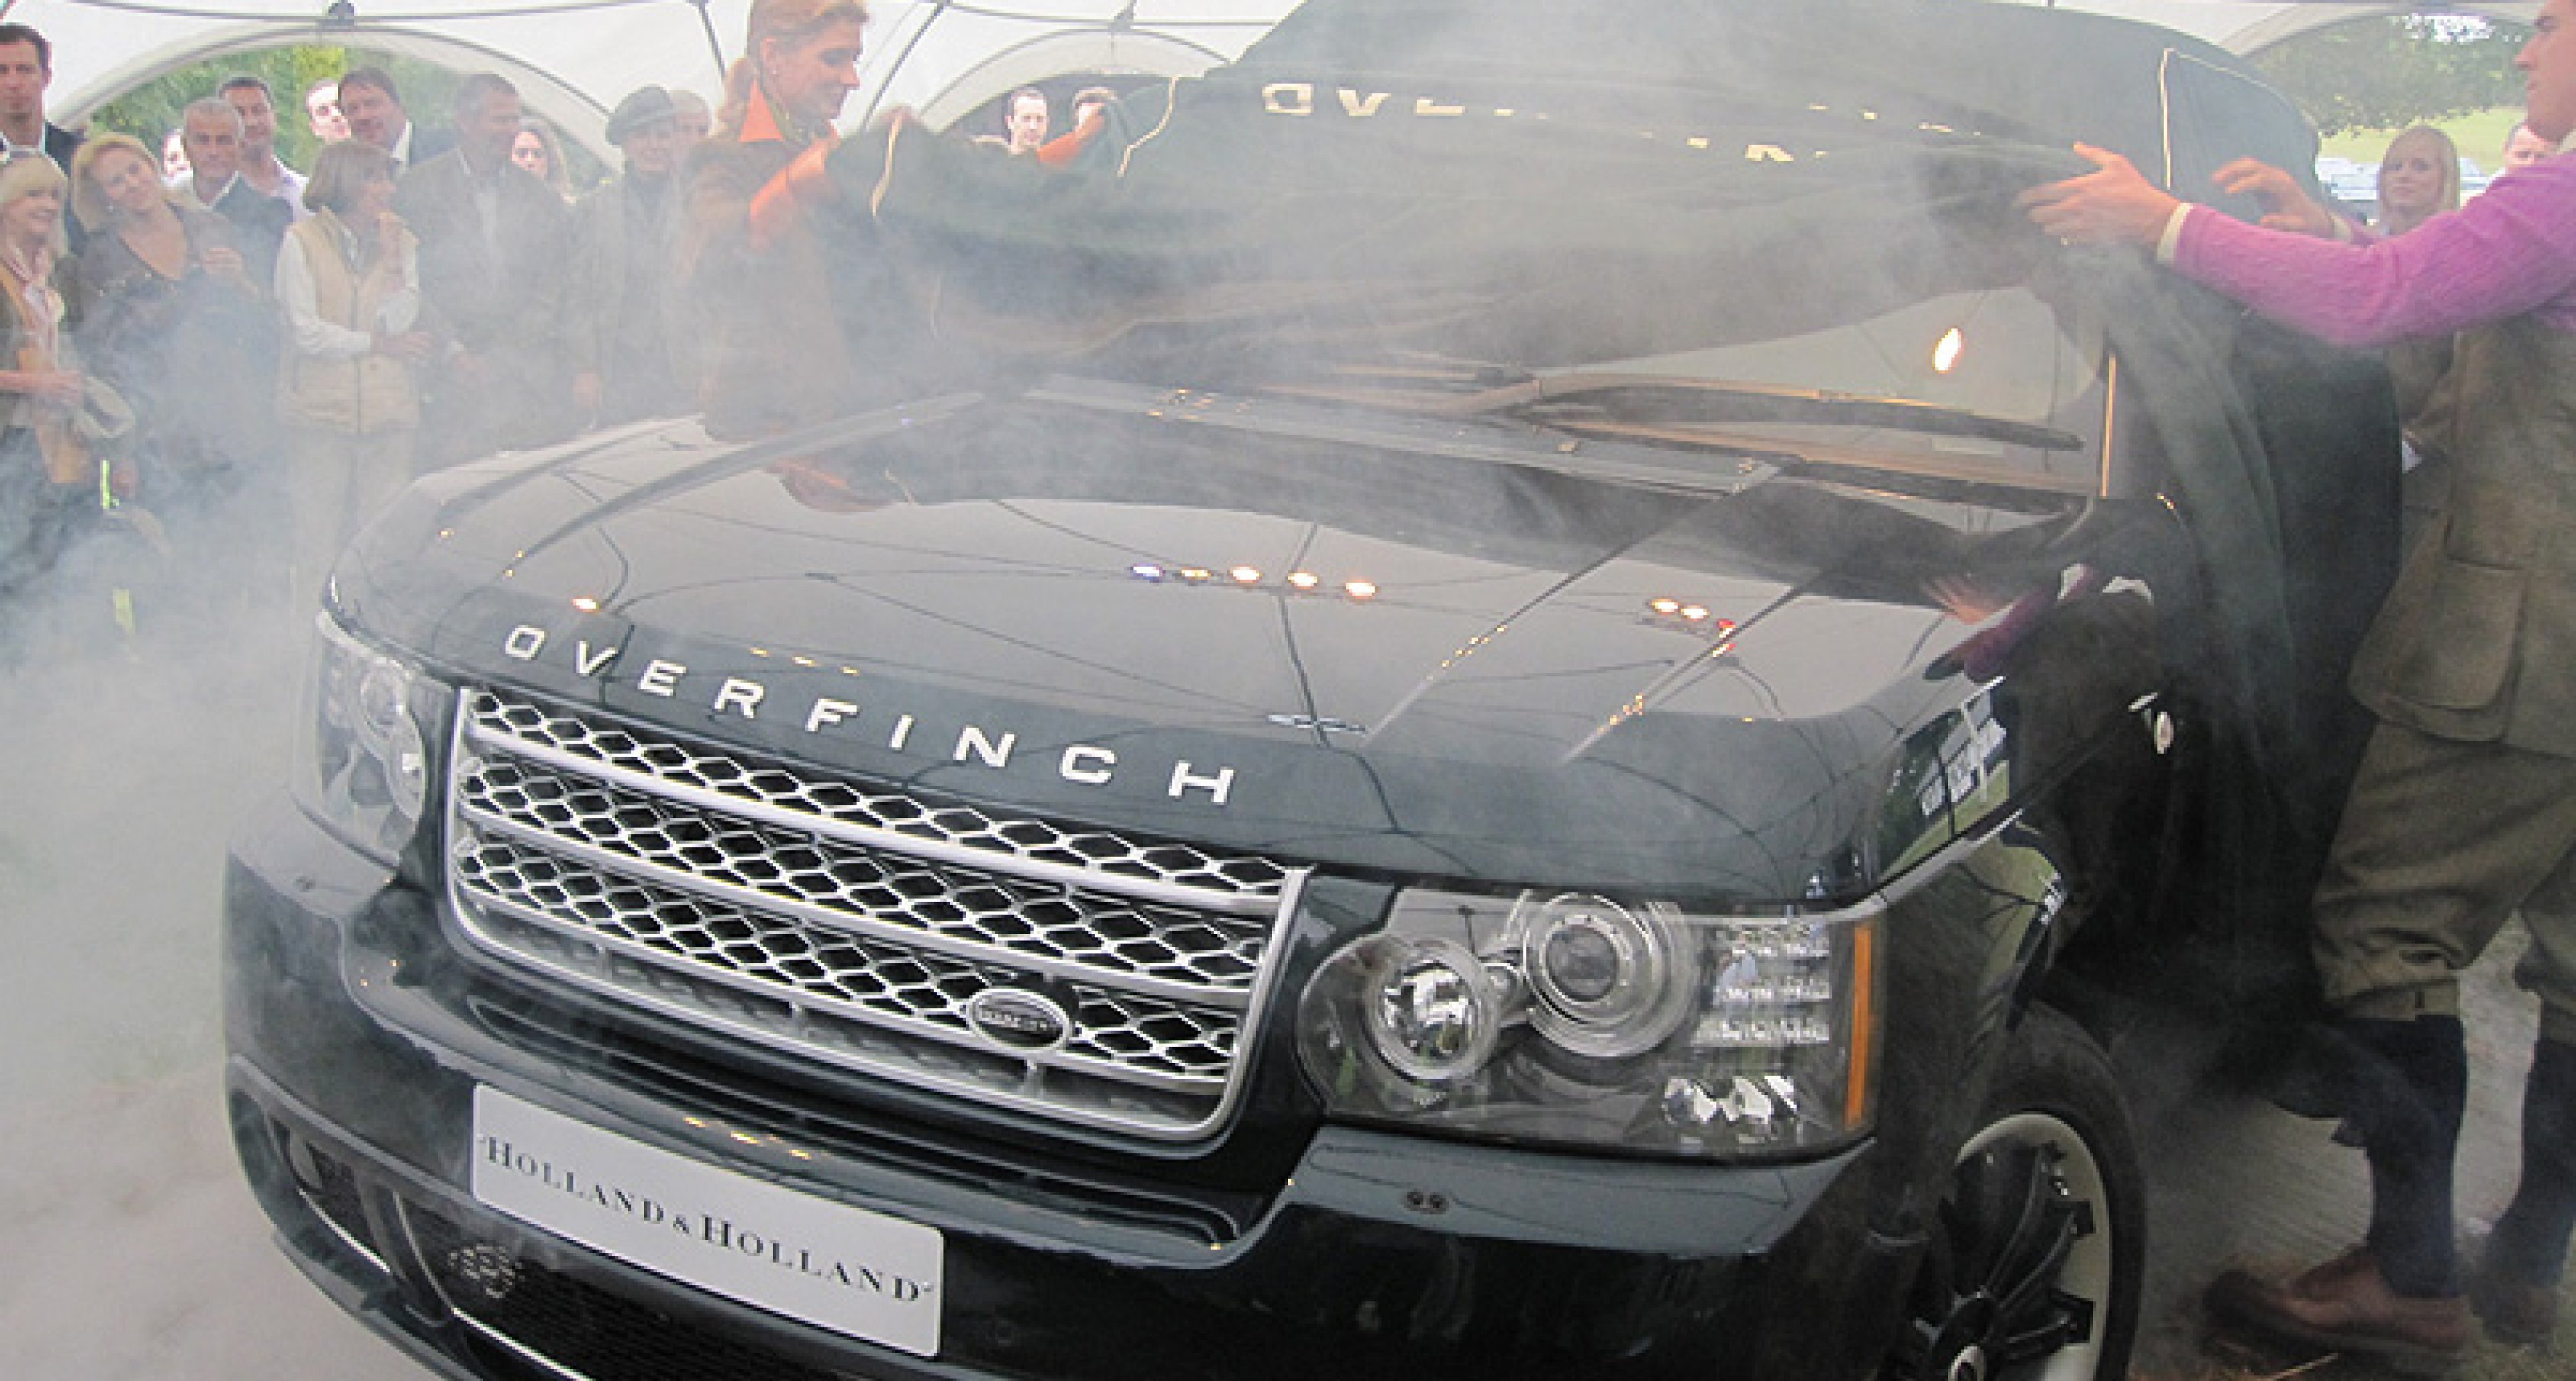 Holland & Holland Range Rover by Overfinch